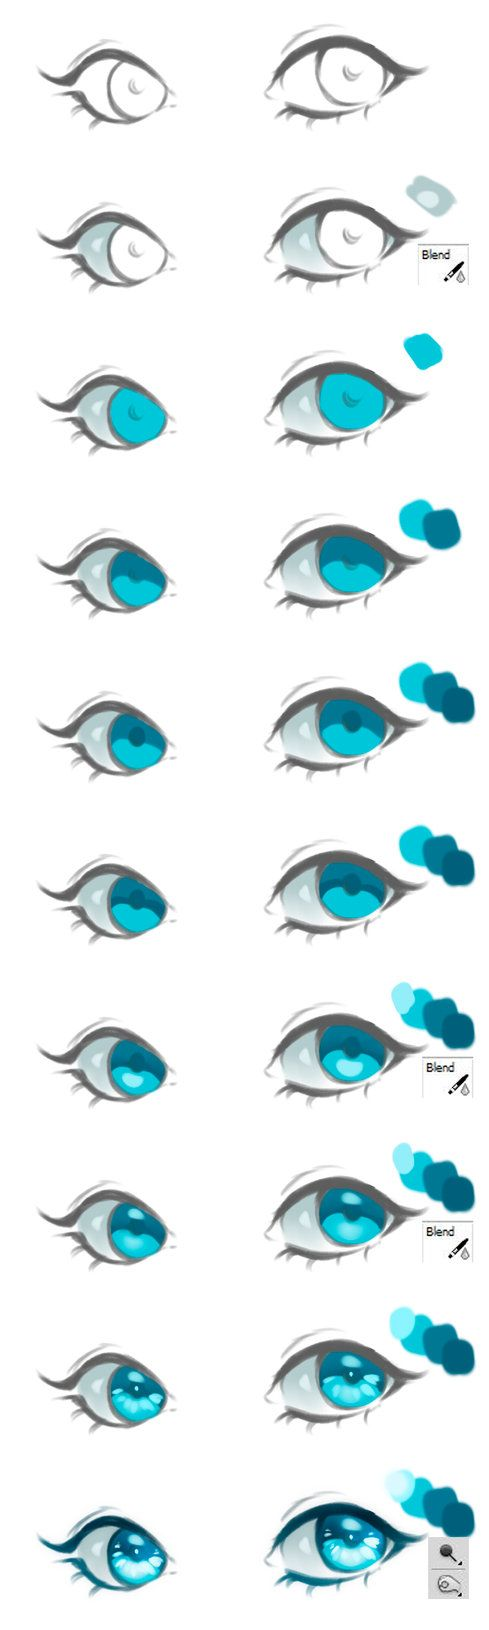 Anime Eyes Coloring Tutorial Vol2 By HaloBlaBla On DeviantArt